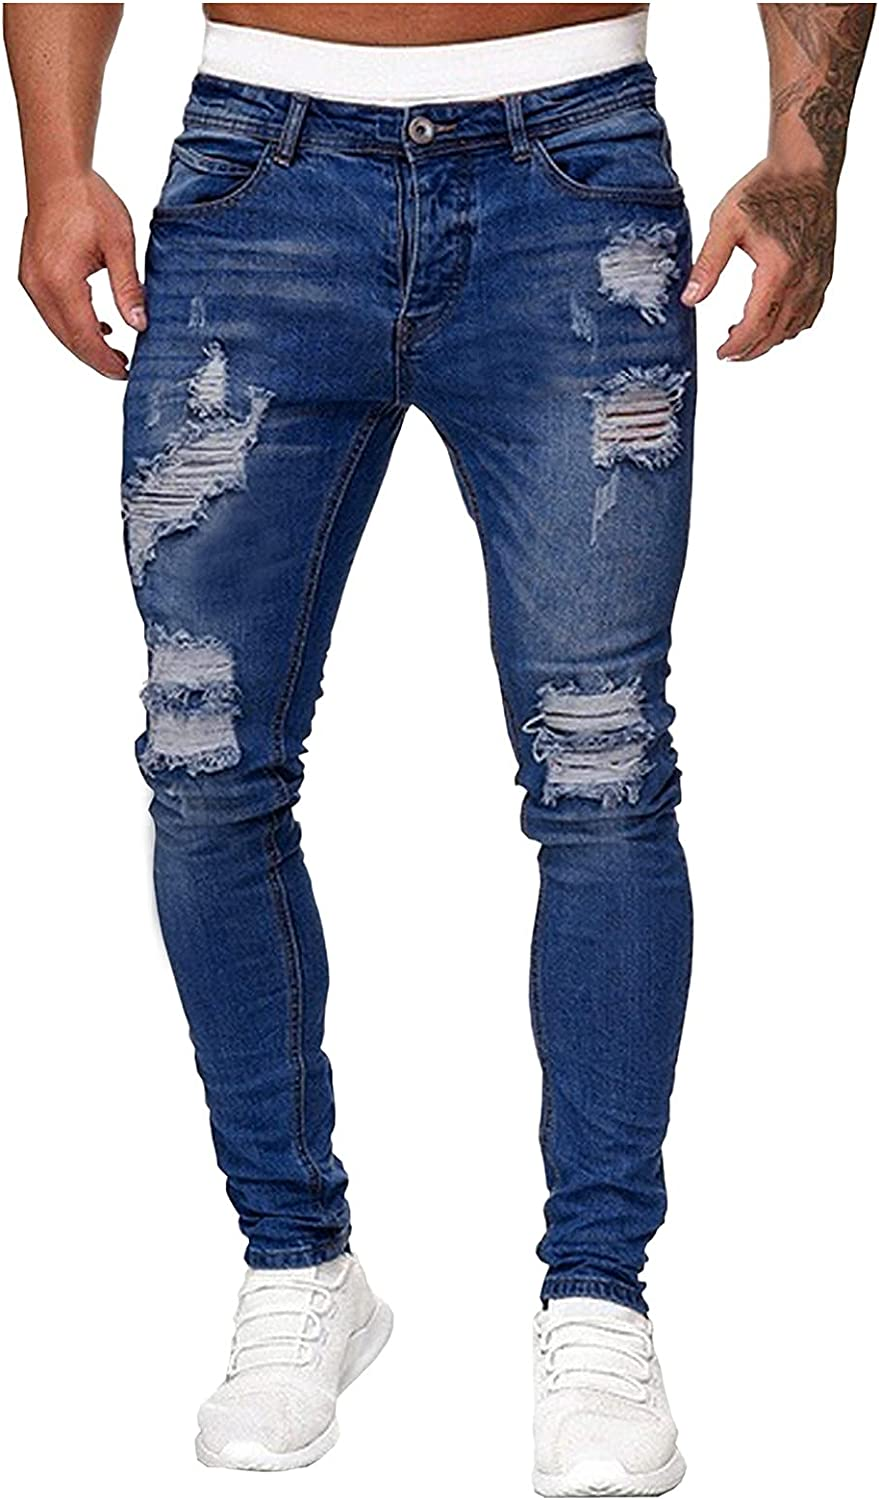 Beshion Stretchy Ripped Jeans for Men Distressed DestroyedtSkinny Stretch Jeans Pants Denim Pants with Broken Holes